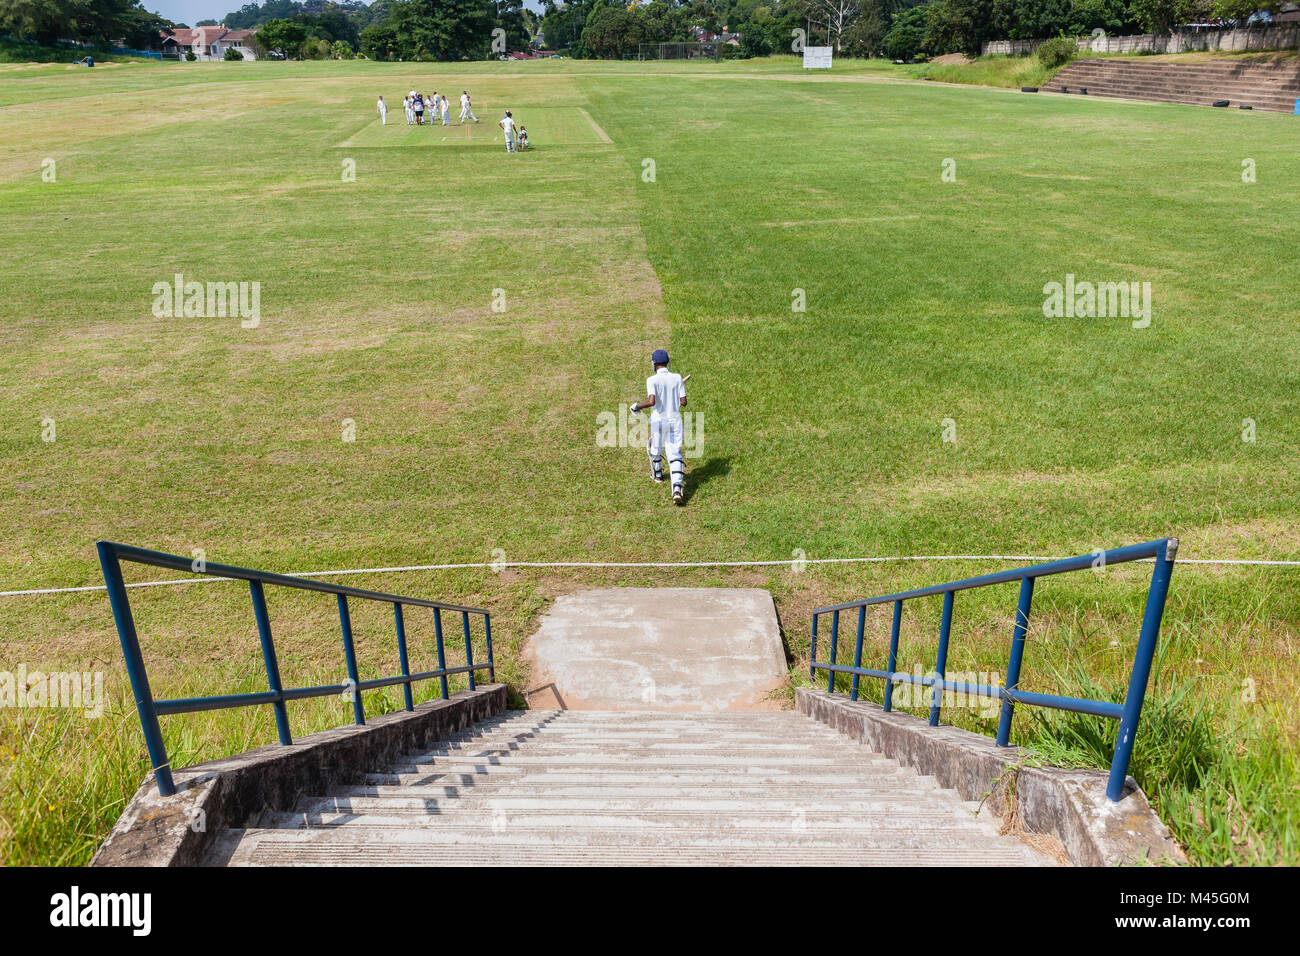 Cricket game high schools teenagers new batsman from steps above playing field. - Stock Image